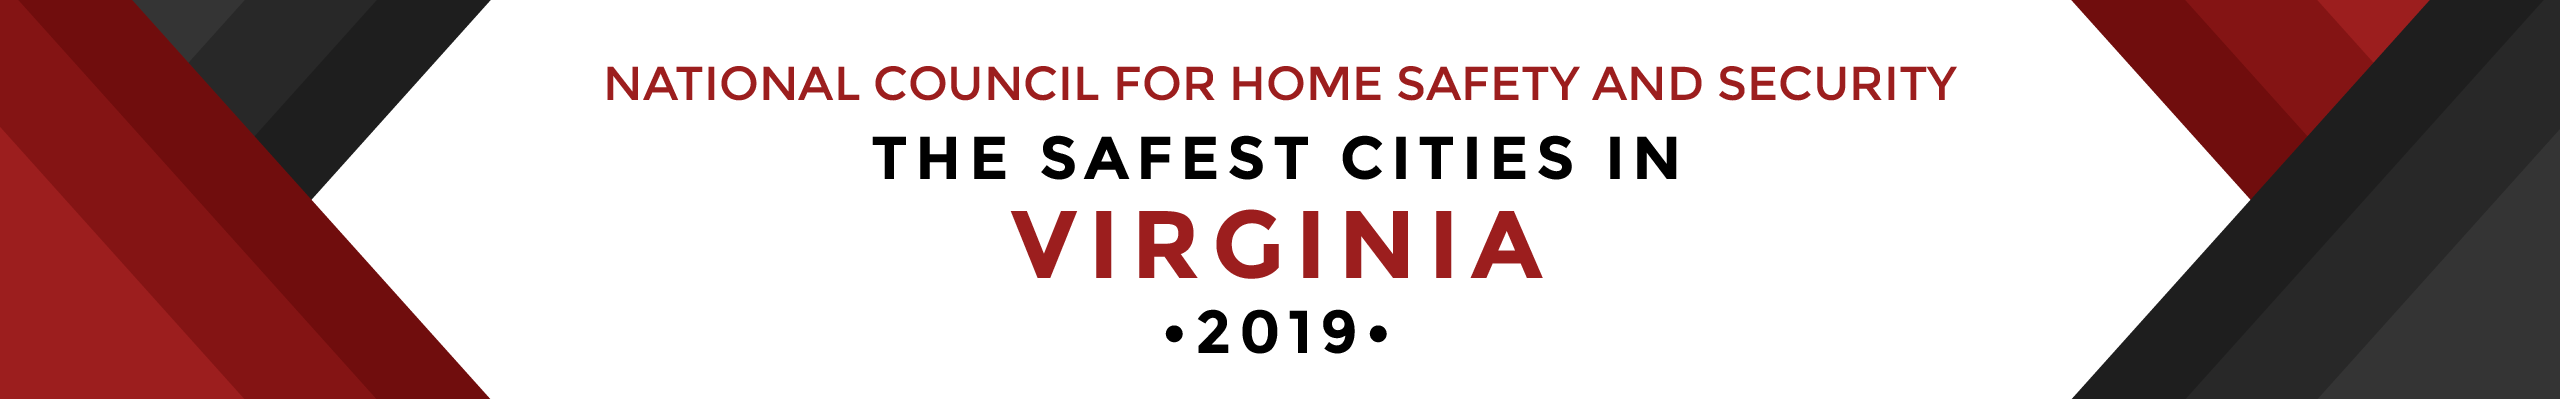 Safest Cities Virginia - header